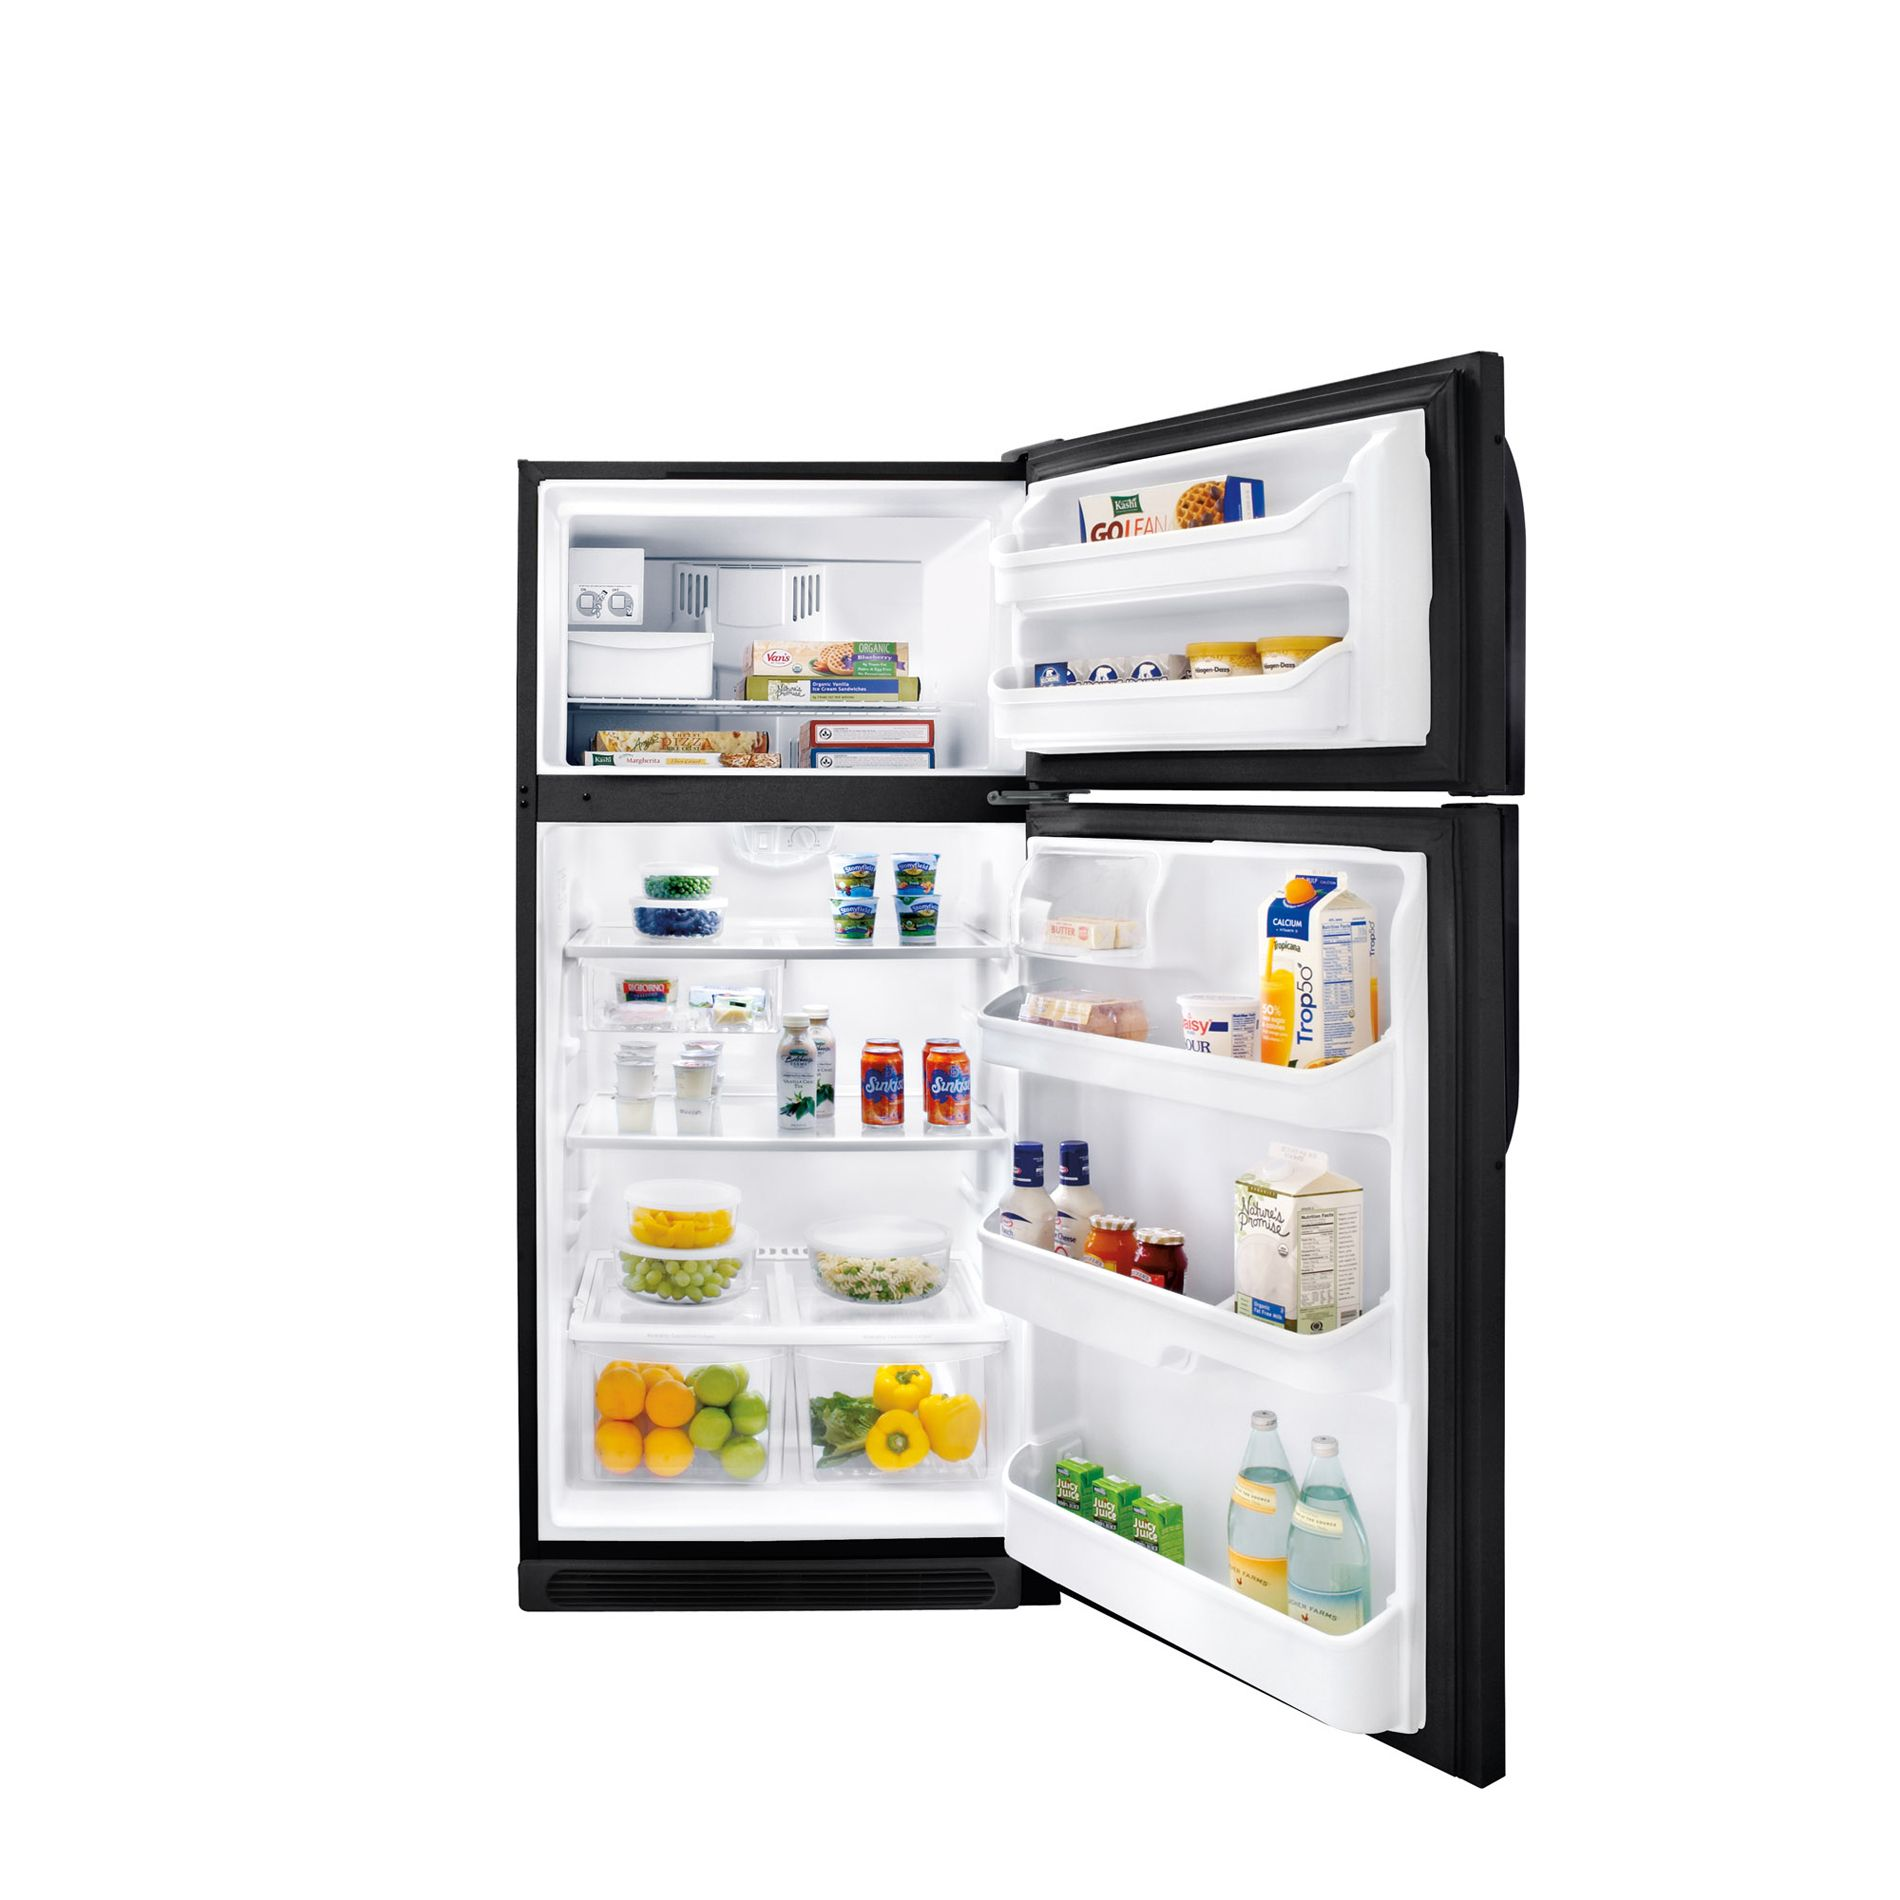 Kenmore 18.2 cu. ft. Top-Freezer Refrigerator - Black